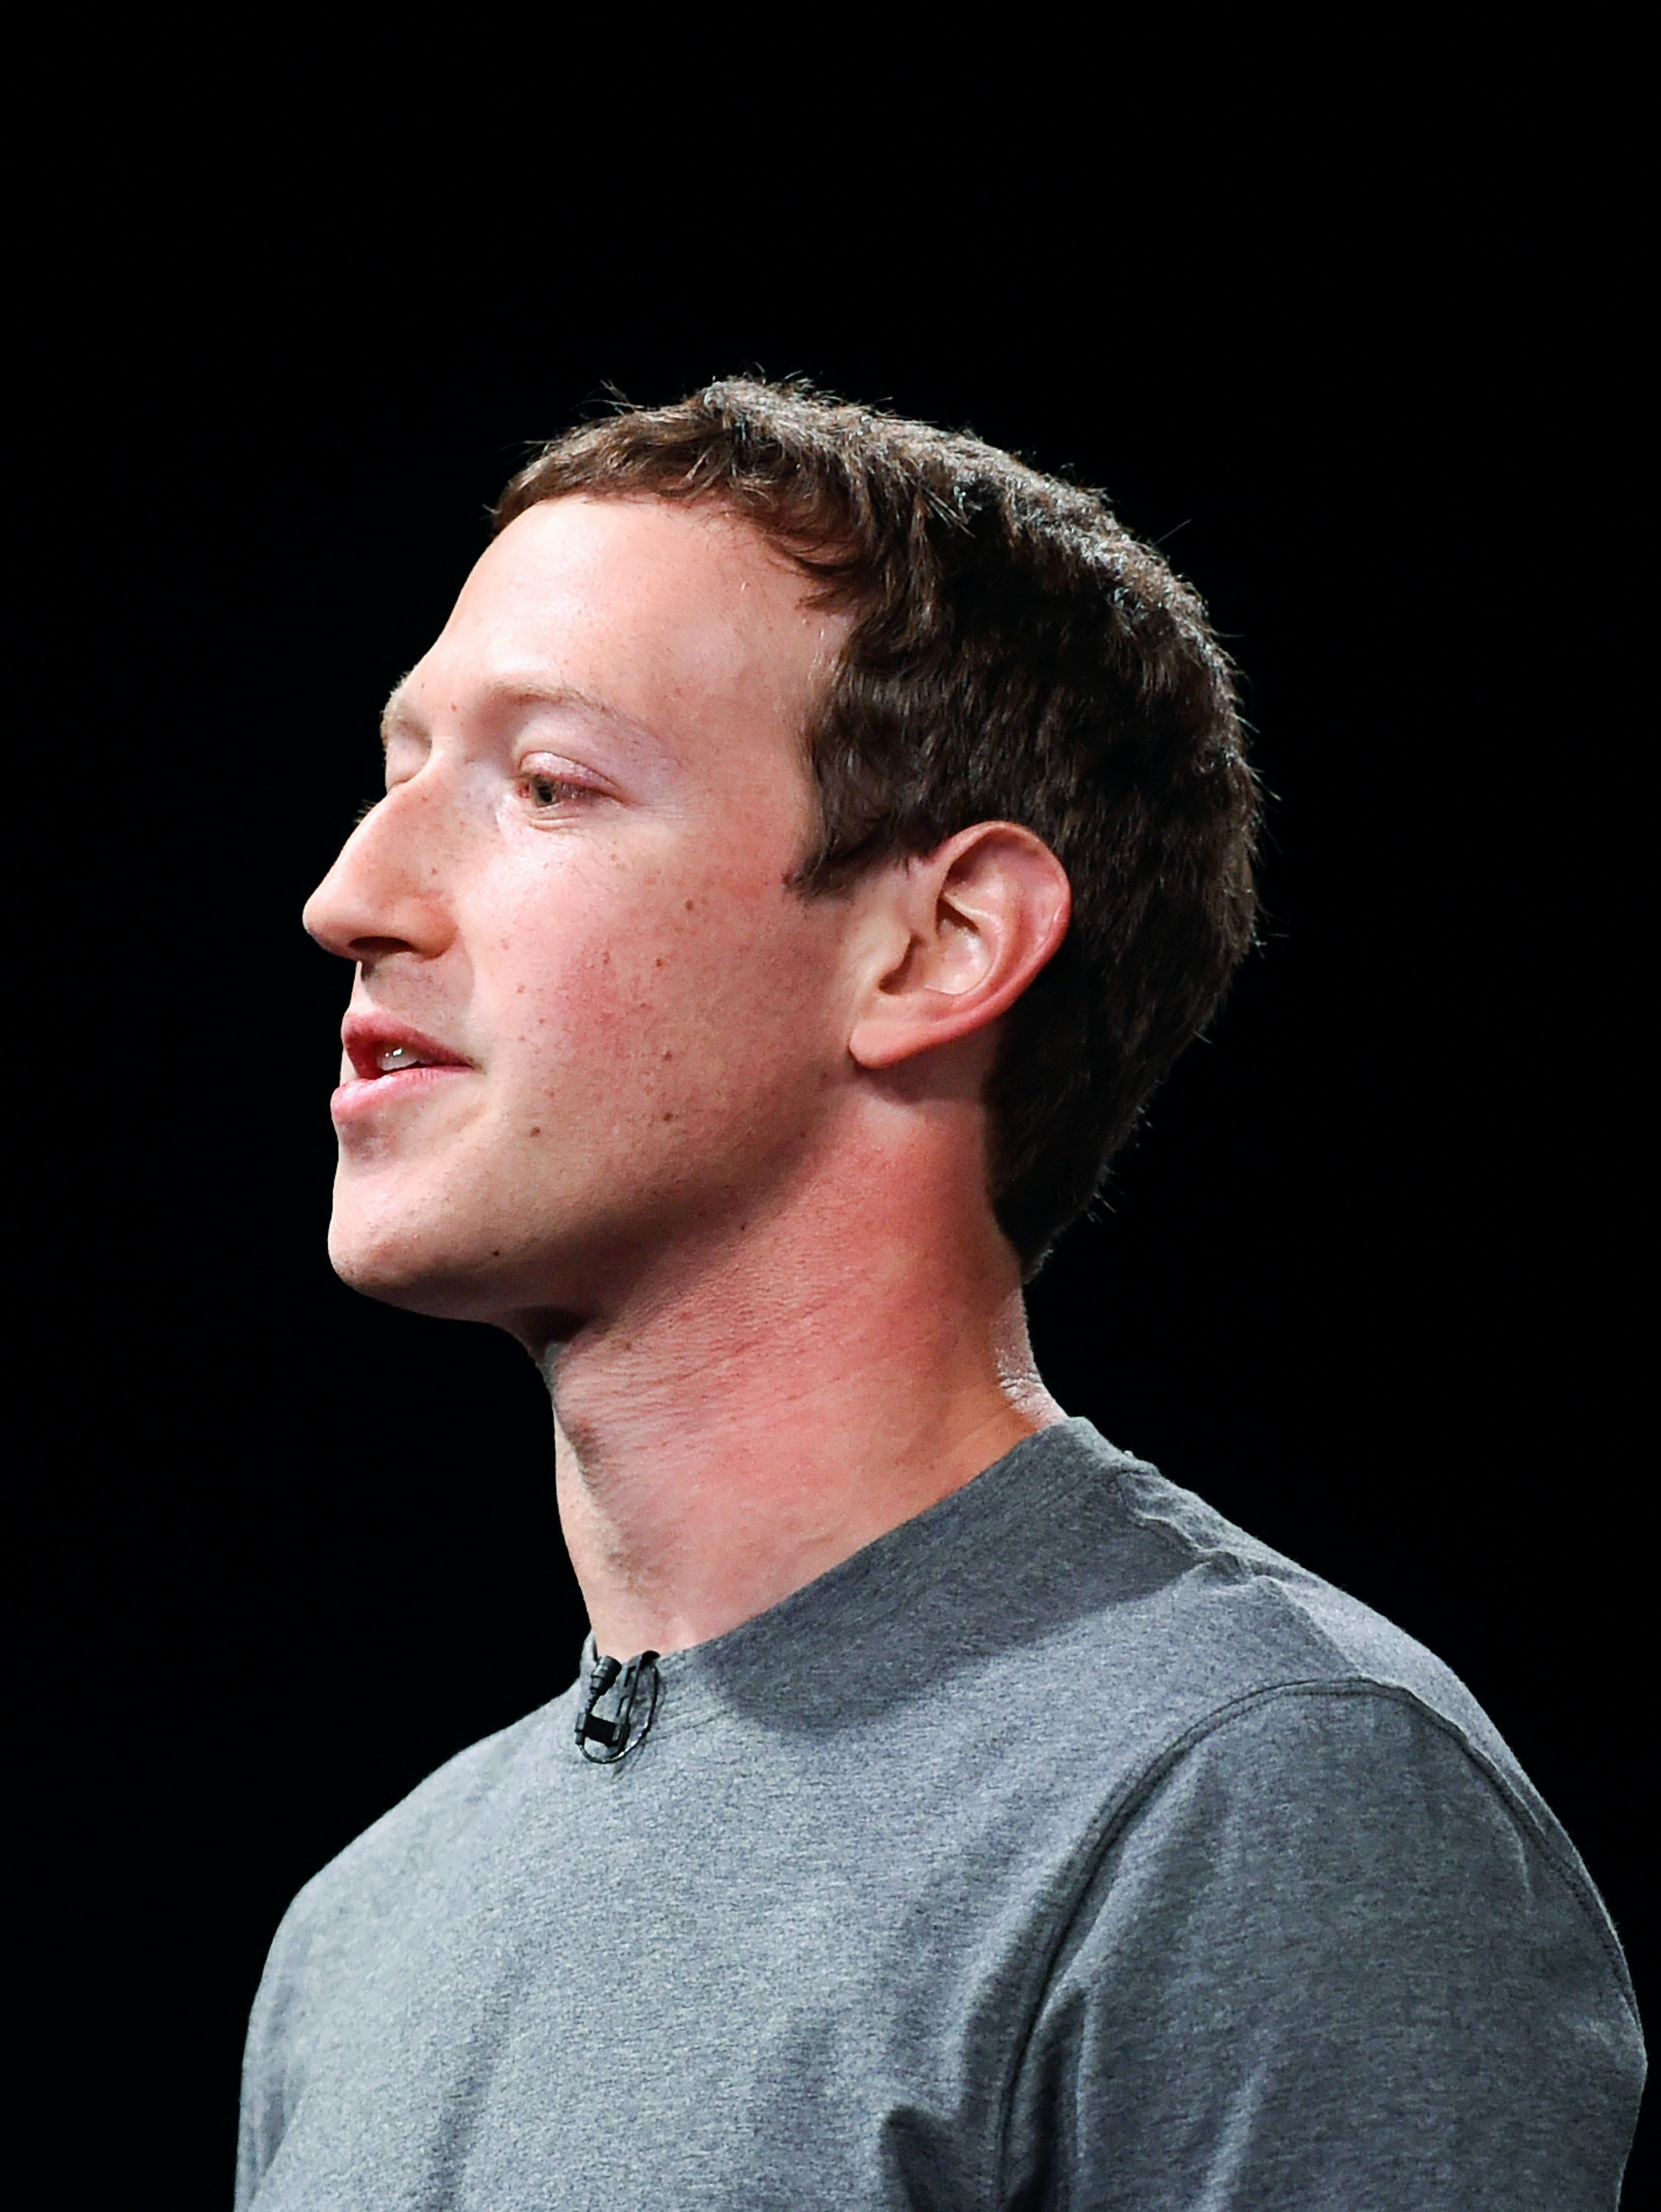 BARCELONA, SPAIN - FEBRUARY 21:  Founder and CEO of Facebook Mark Zuckerber gives his speach during the presentation of the new Samsung Galaxy S7 and Samsung Galaxy S7 edge on February 21, 2016 in Barcelona, Spain. The annual Mobile World Congress will start tomorrow February 22 hosting some of the world's largst communication companies, with many unveiling their last phones and gadgets.  (Photo by David Ramos/Getty Images)